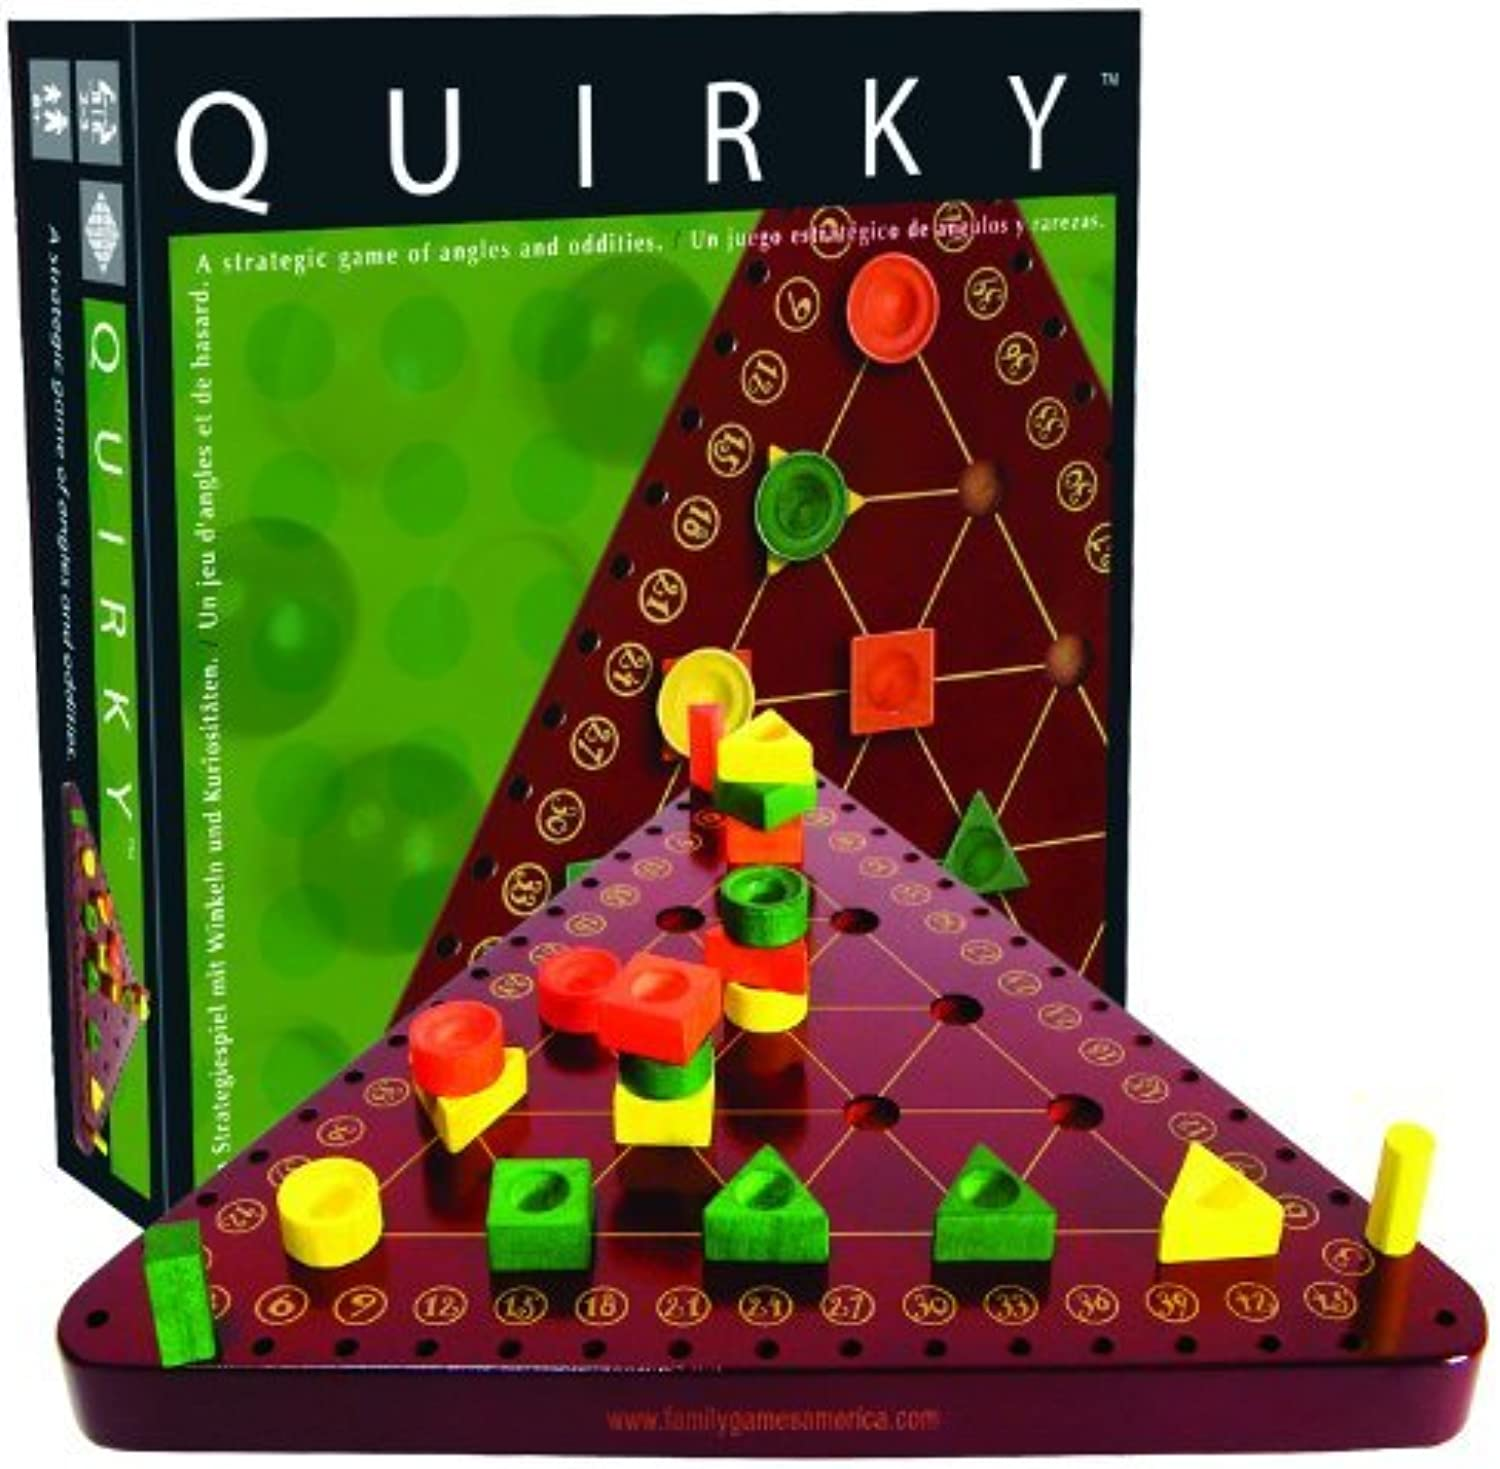 Quirky Strategy Game by Family Games